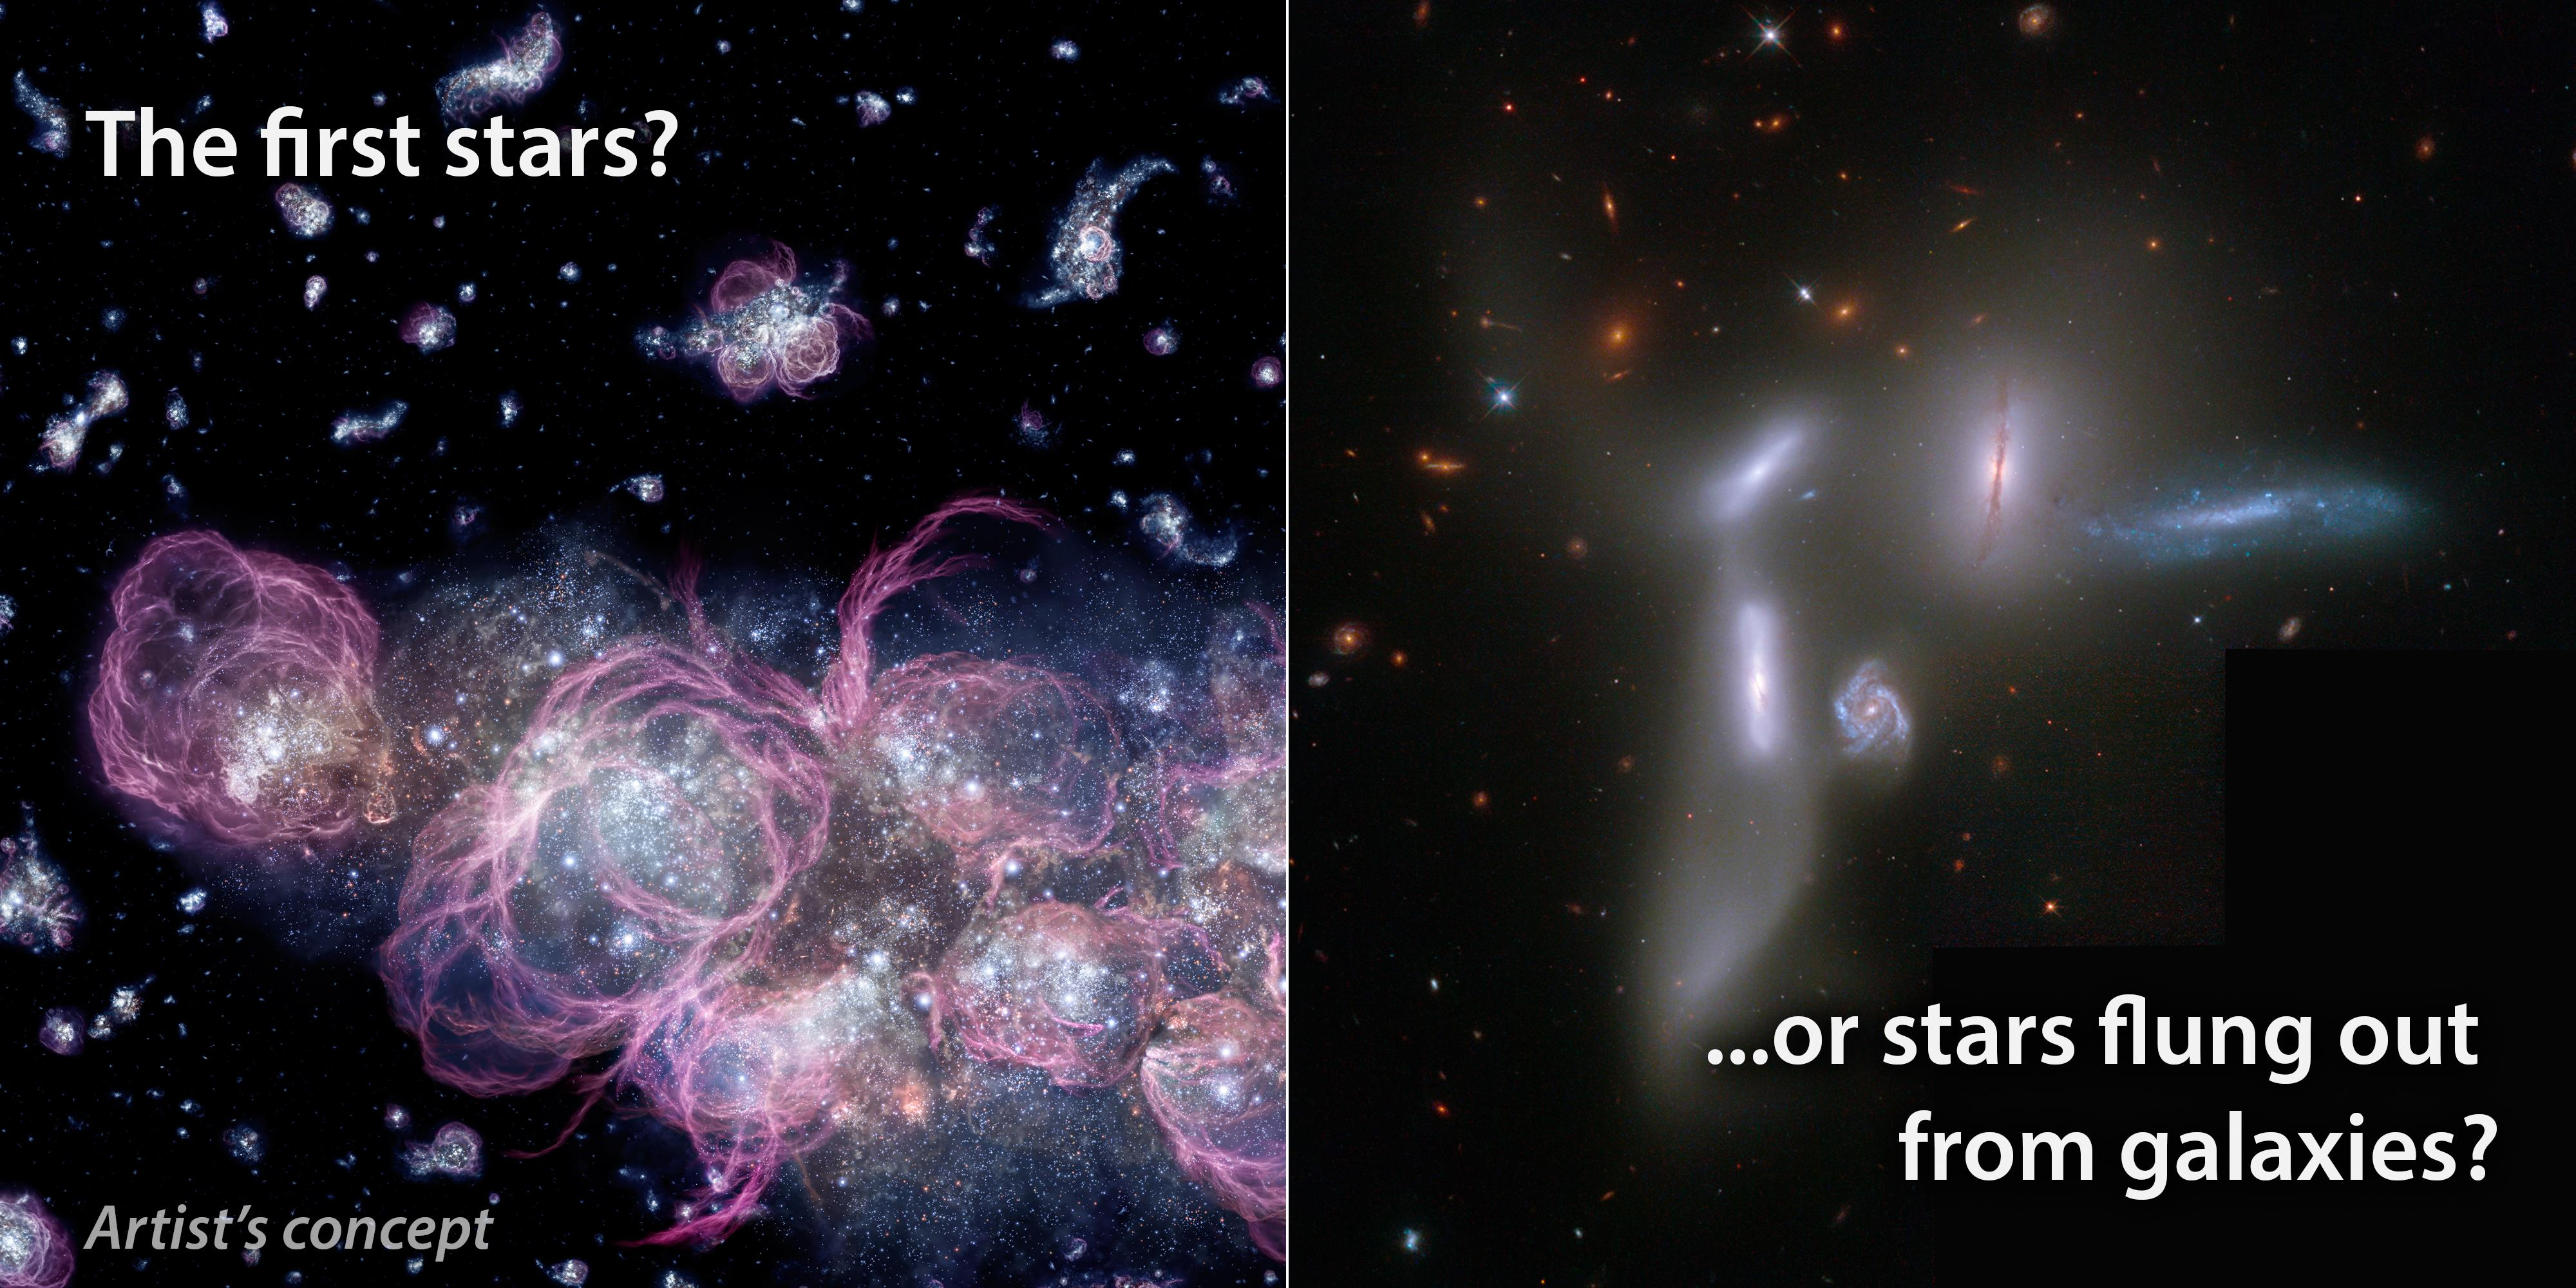 Universe is brighter than we thought according to NASA ...